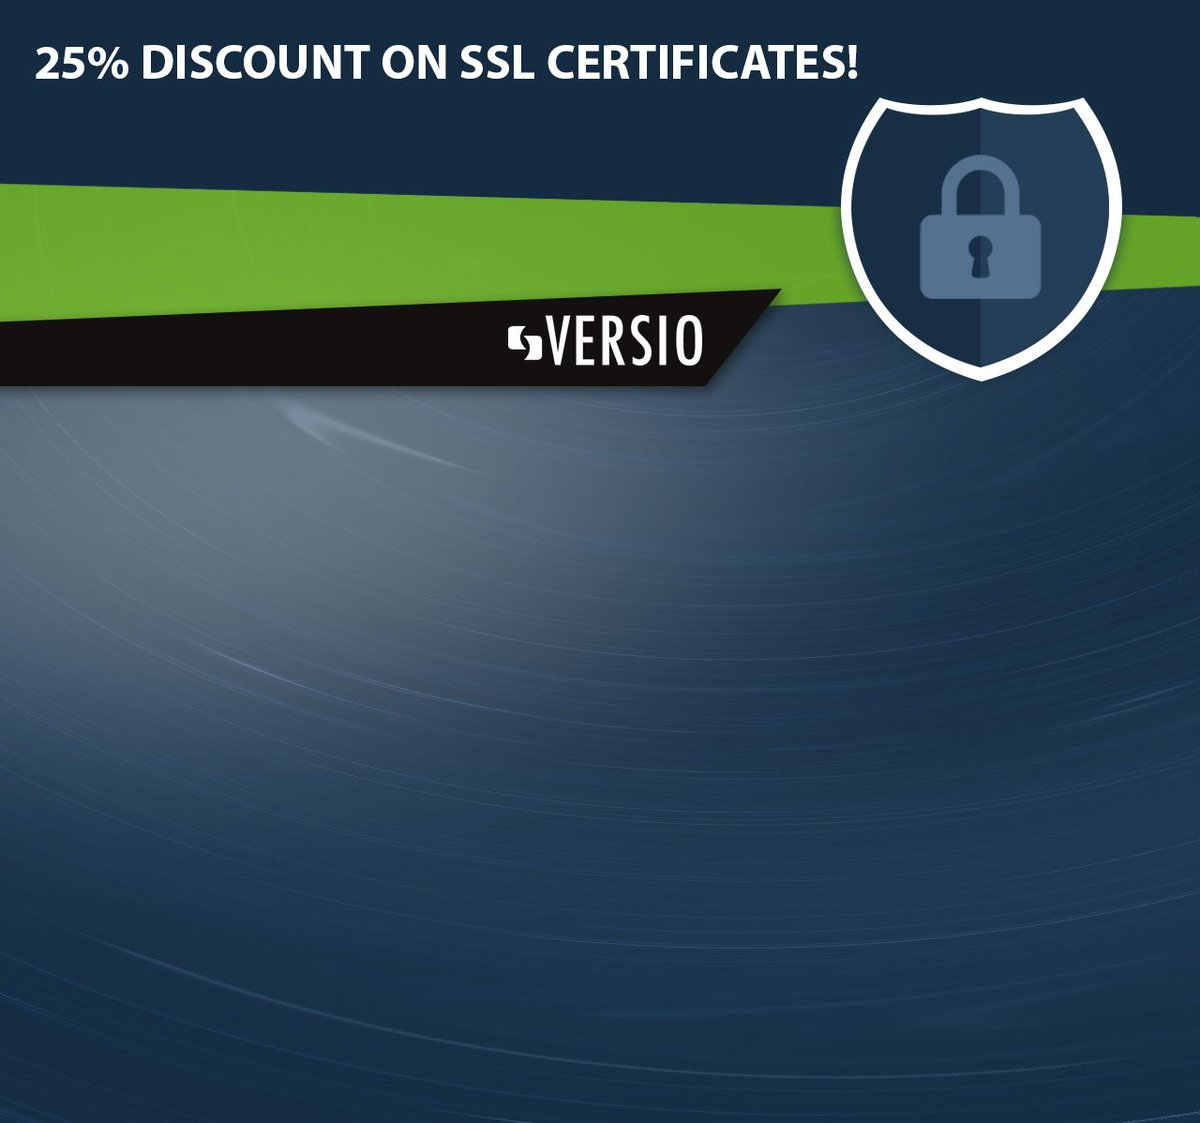 Versio uk on twitter 25 discount on ssl certificates use versio uk on twitter 25 discount on ssl certificates use discount code secure my website with ssl httpstkpsmwemsid httpstbj8qnbgqx7 xflitez Images